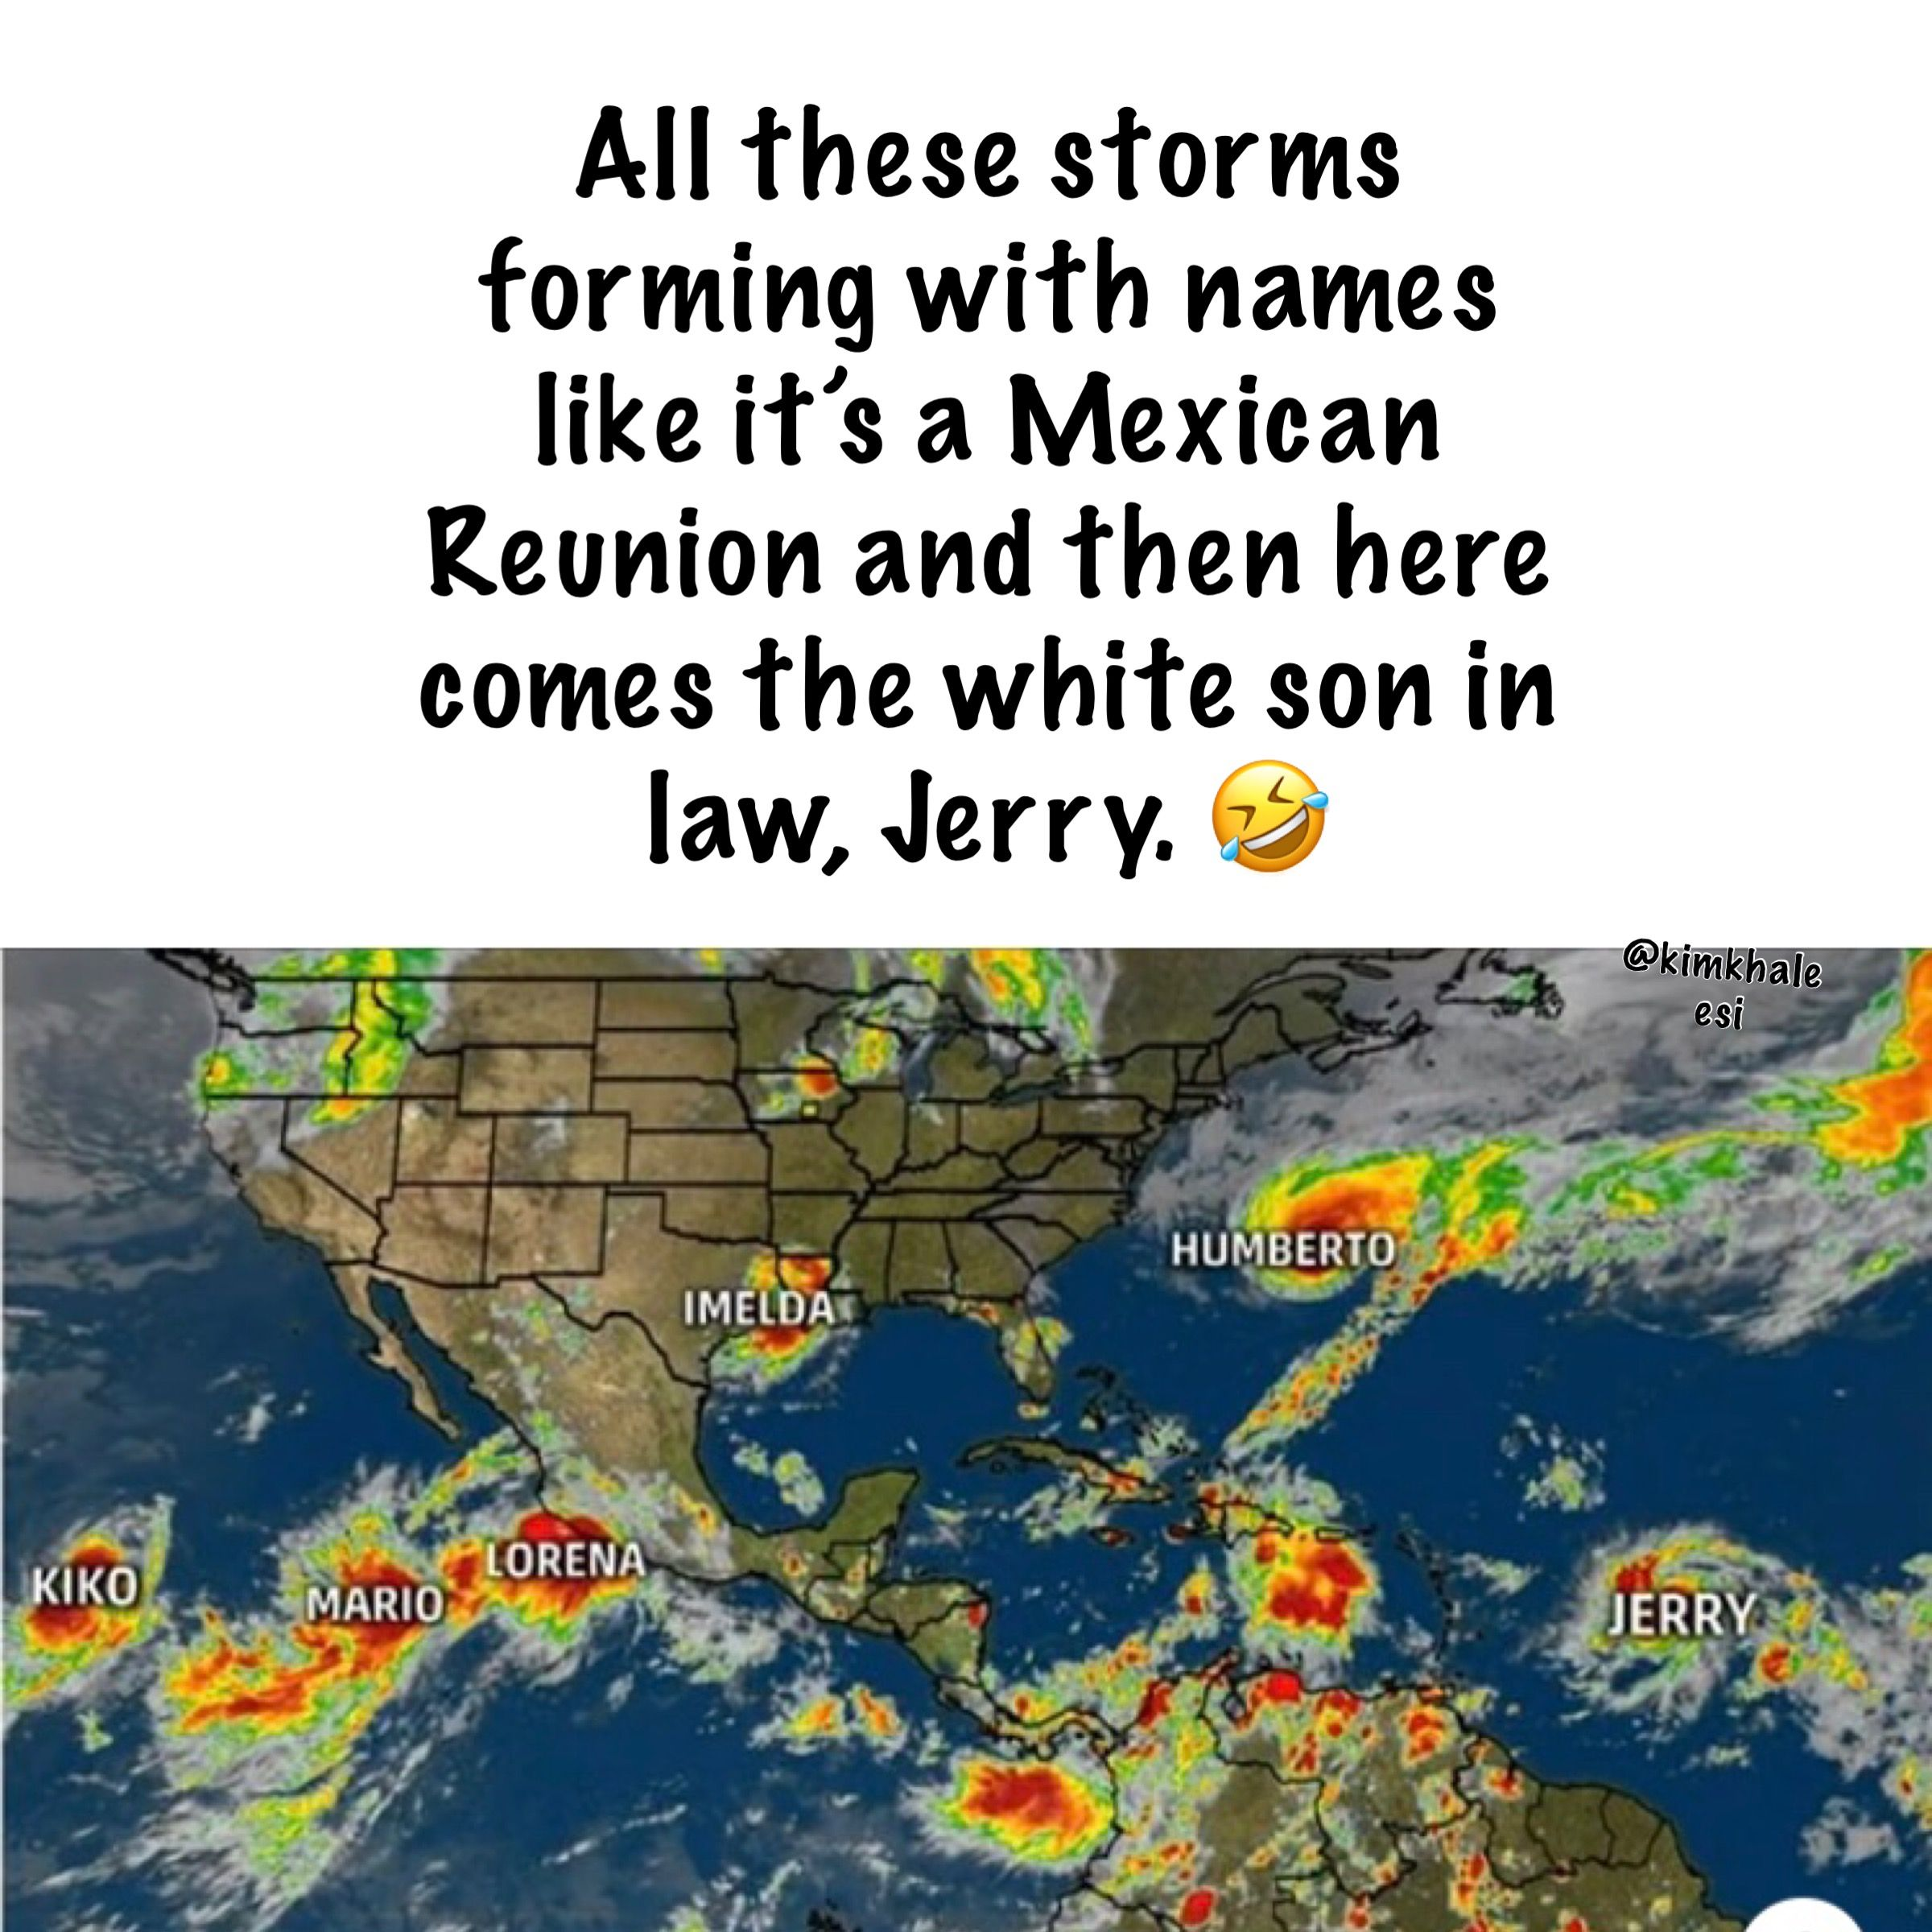 Jerry Storm Meme Real Talk Quotes Storm Chasing Nature Photography